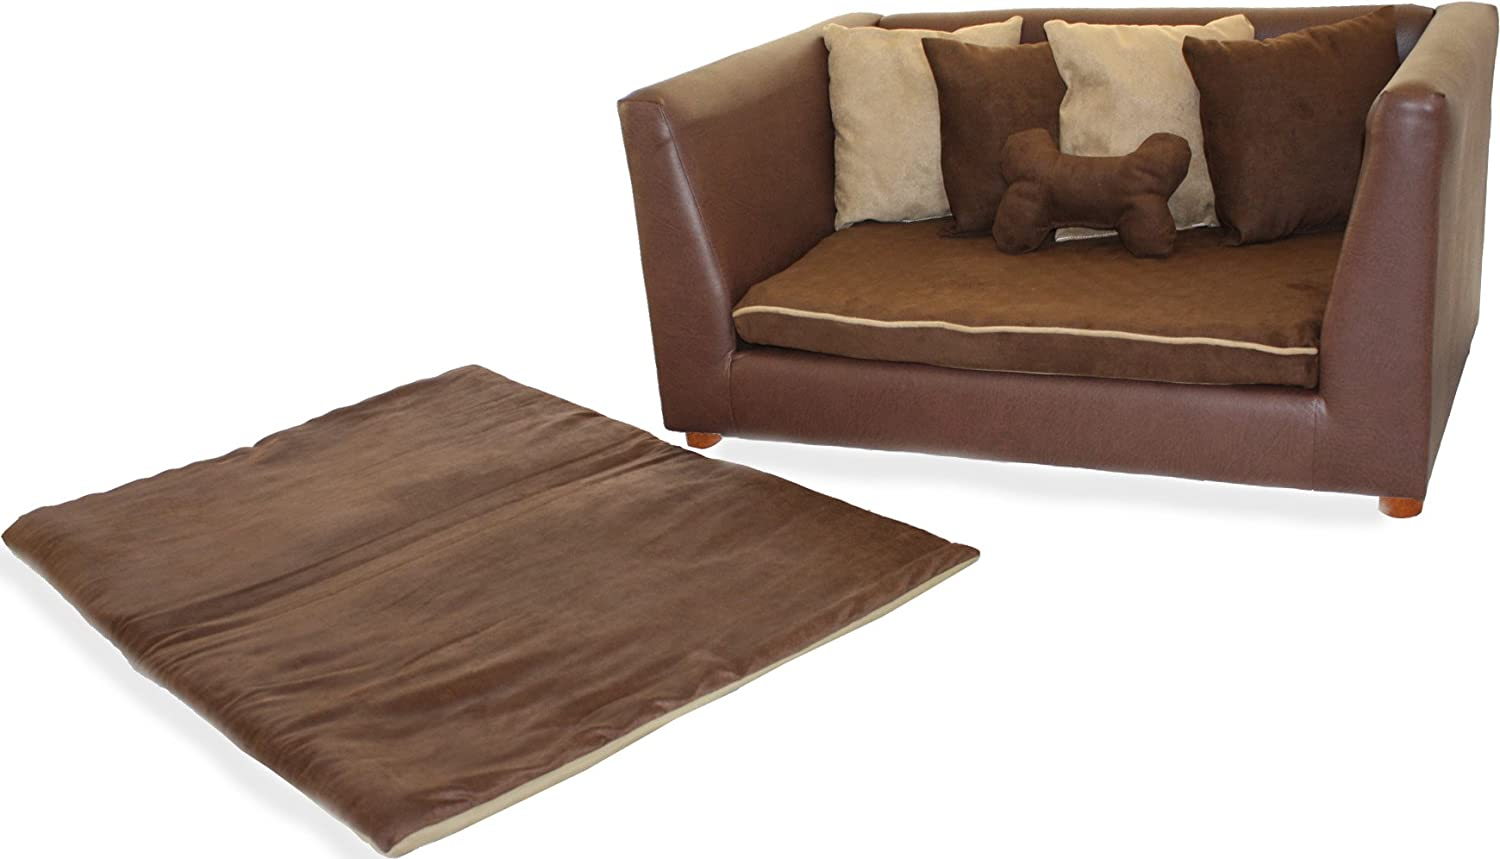 amazoncom deluxe orthopedic memory foam dog bed set large brown pet beds pet supplies